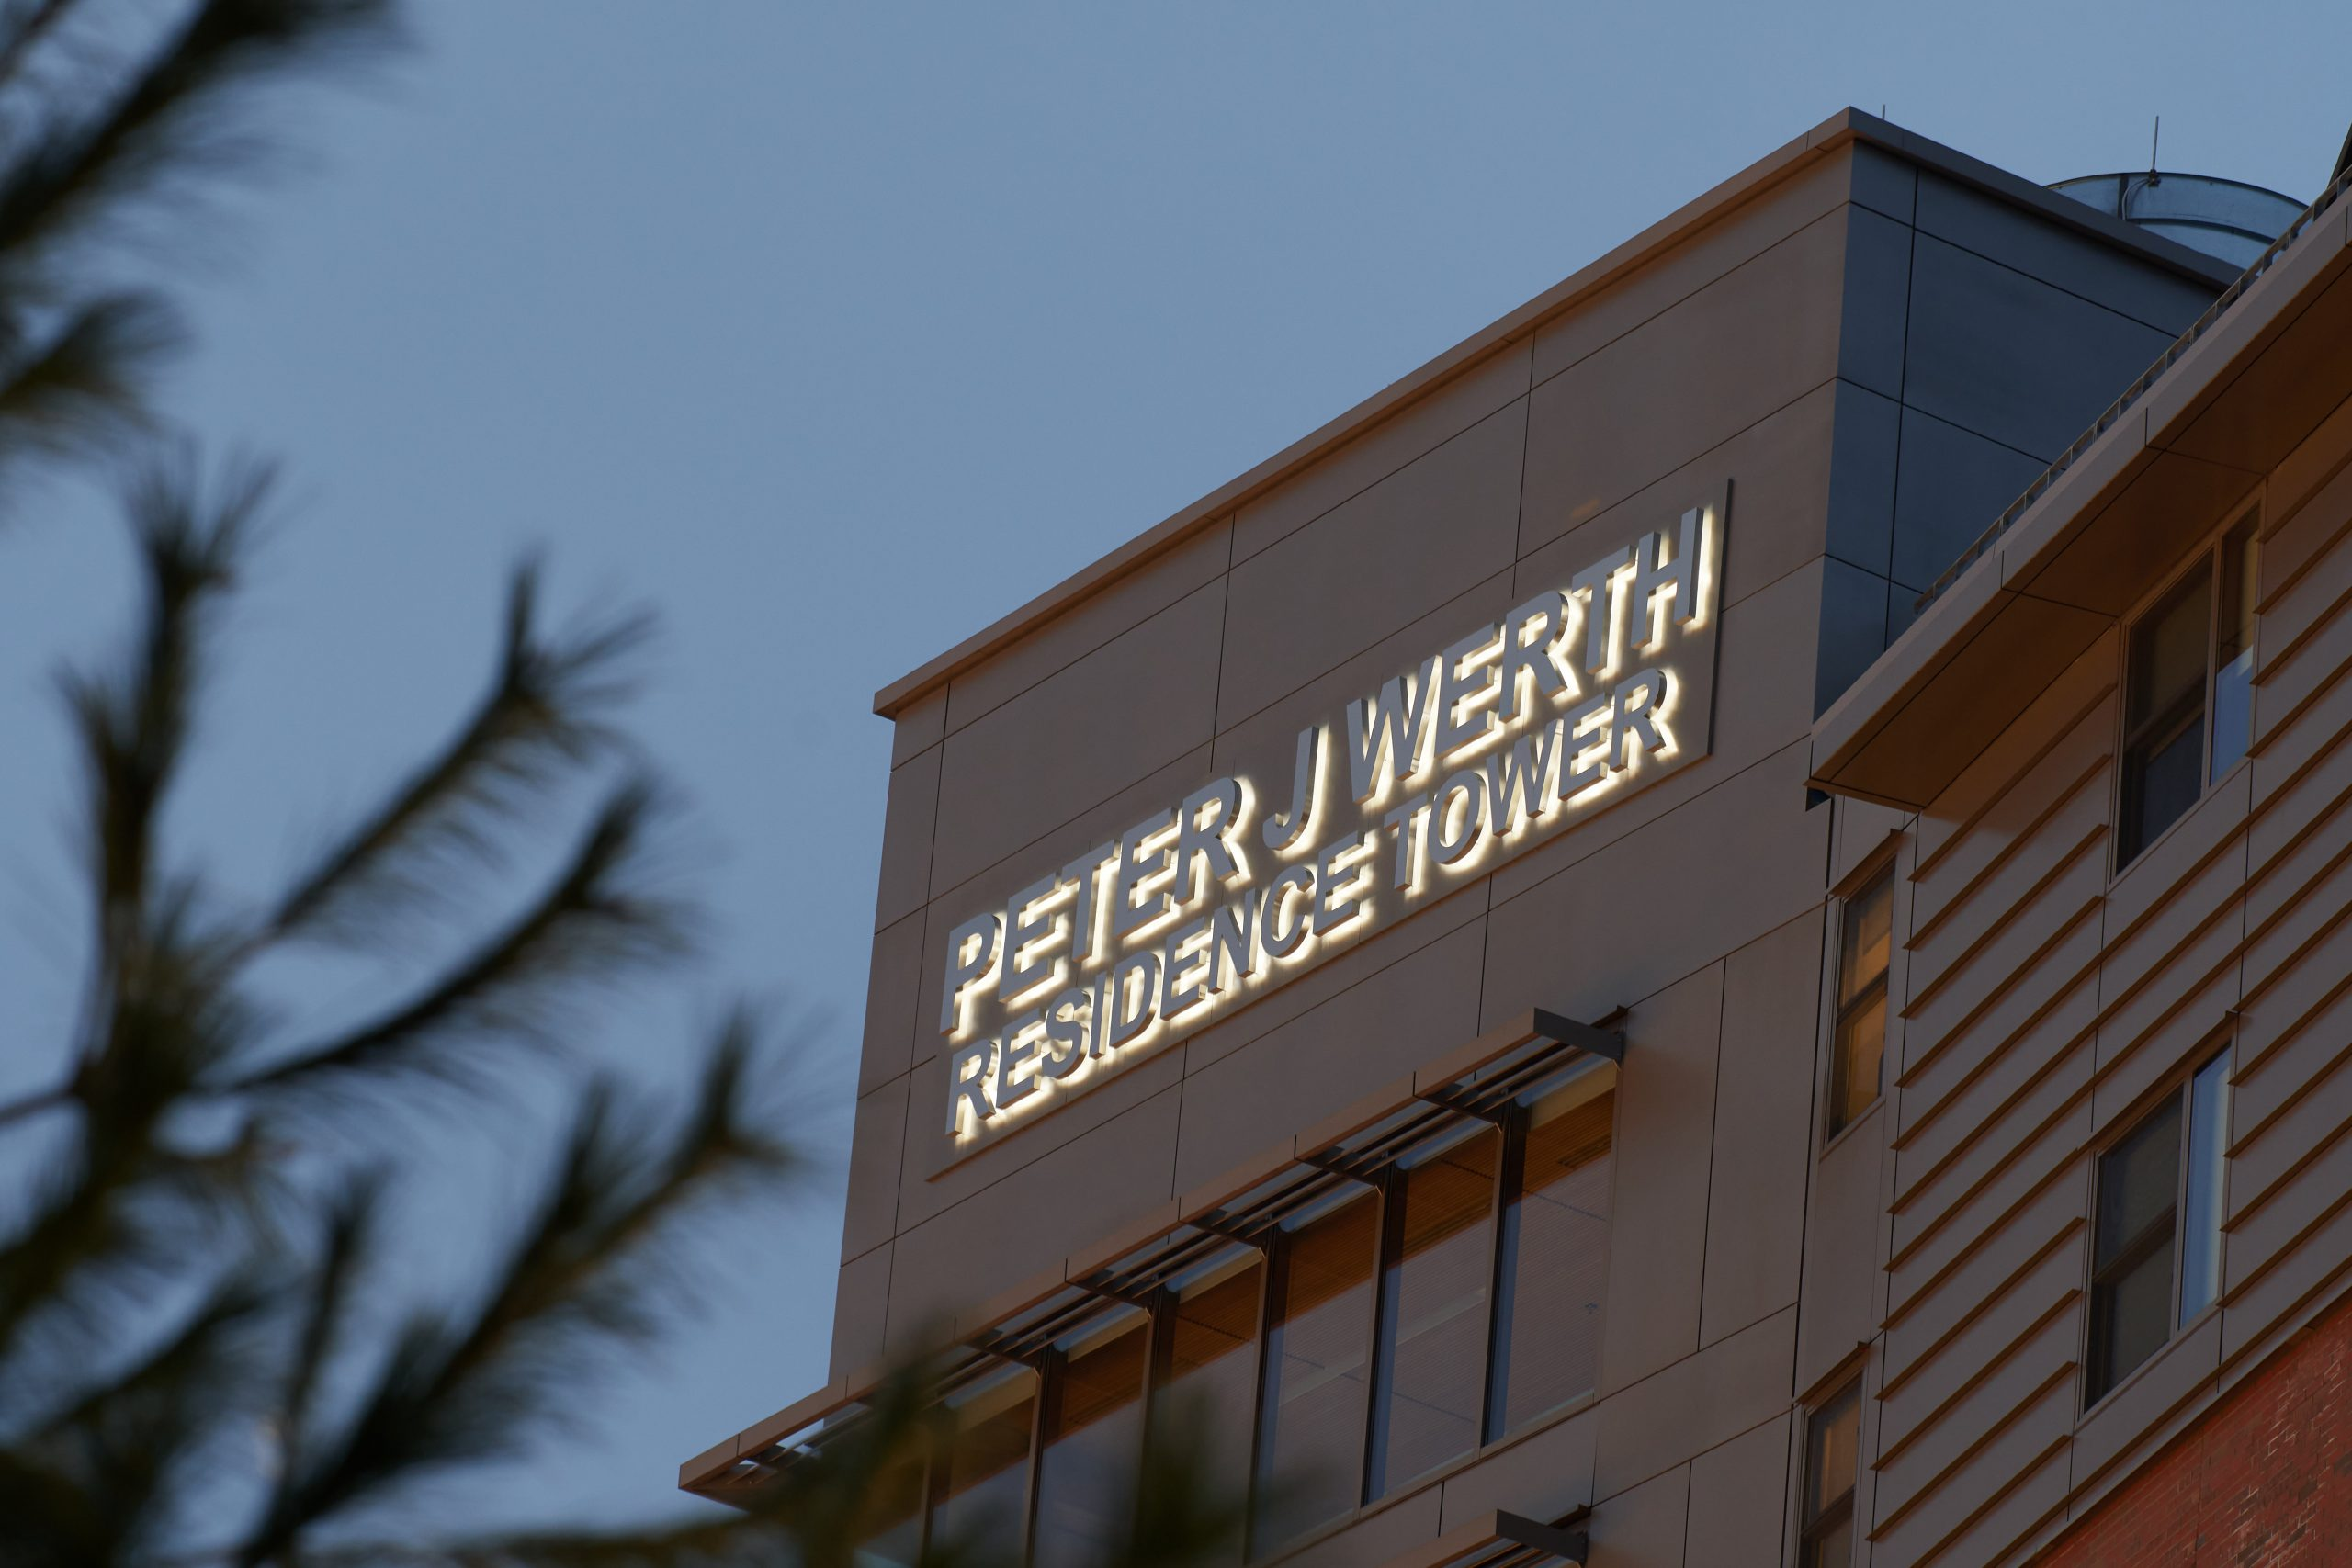 A view at dusk of the Peter J. Werth Residence Tower on Jan. 14, 2021.